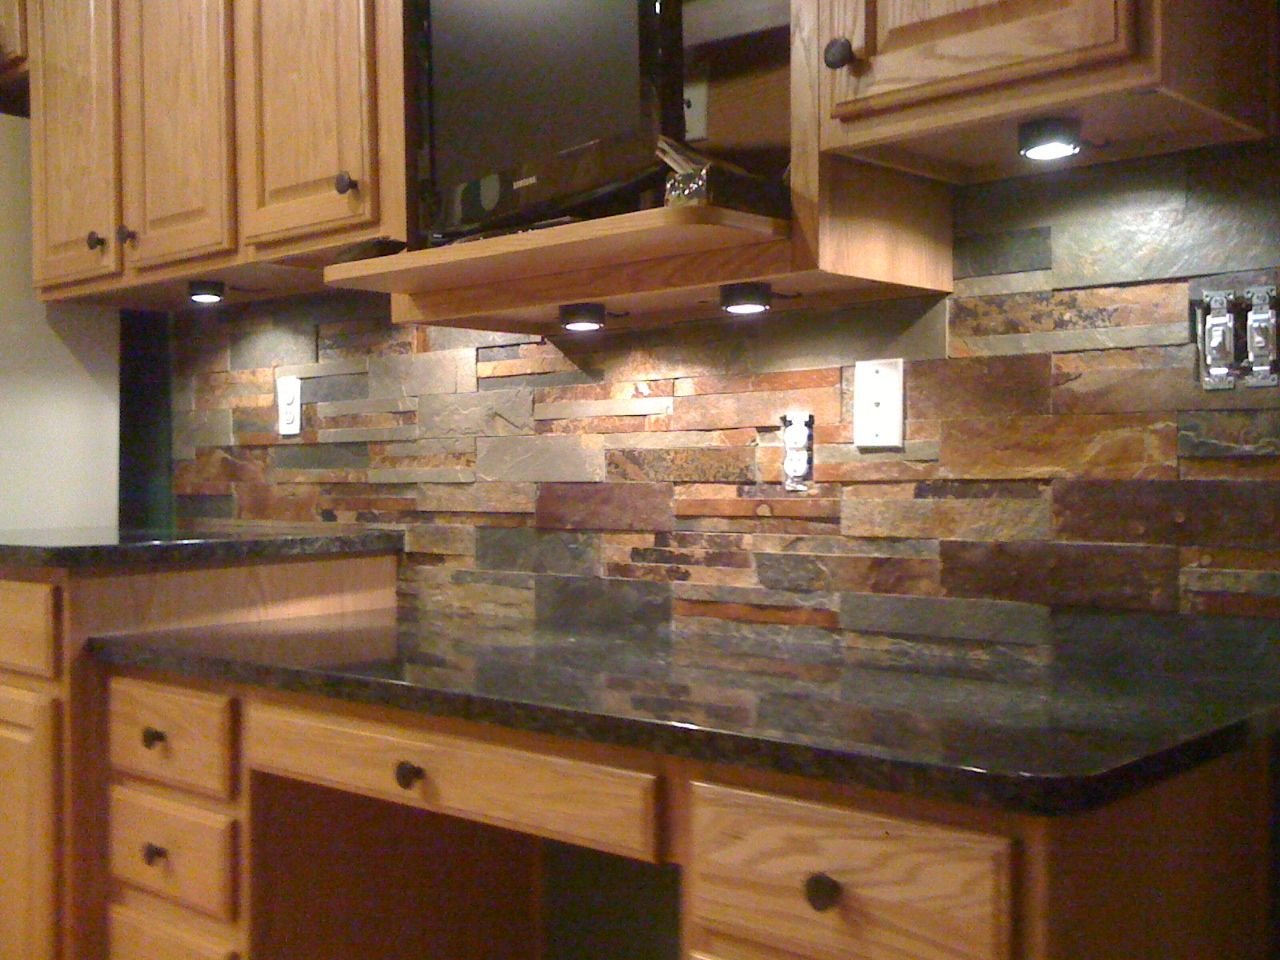 Inspirational Natural Stone Backsplash Natural Stone Backsplash With White throughout Unique How To Install Stone Backsplash